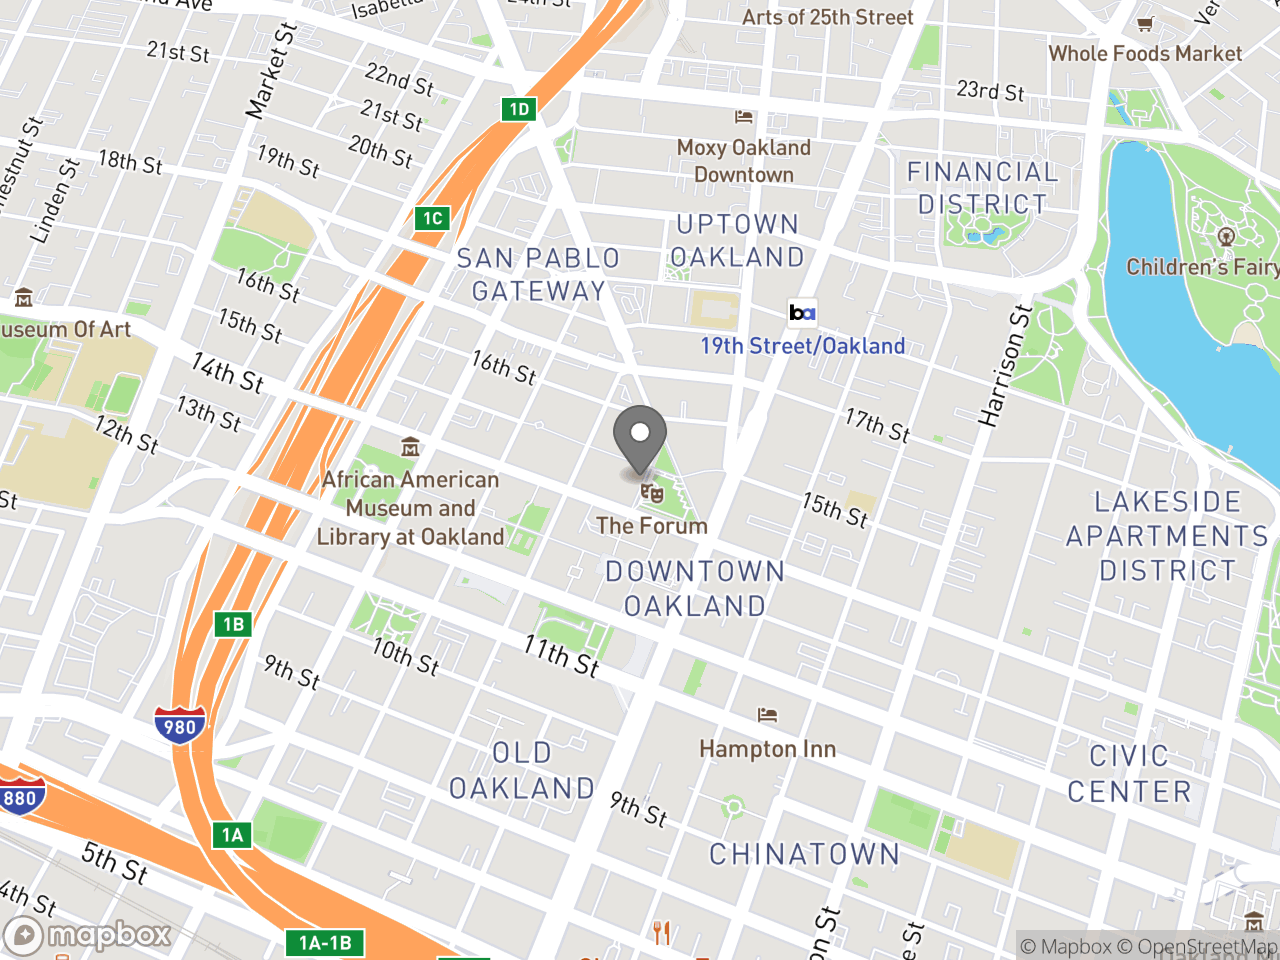 Map image for Mayor, located at 1 Frank H. Ogawa Plaza in Oakland, CA 94612